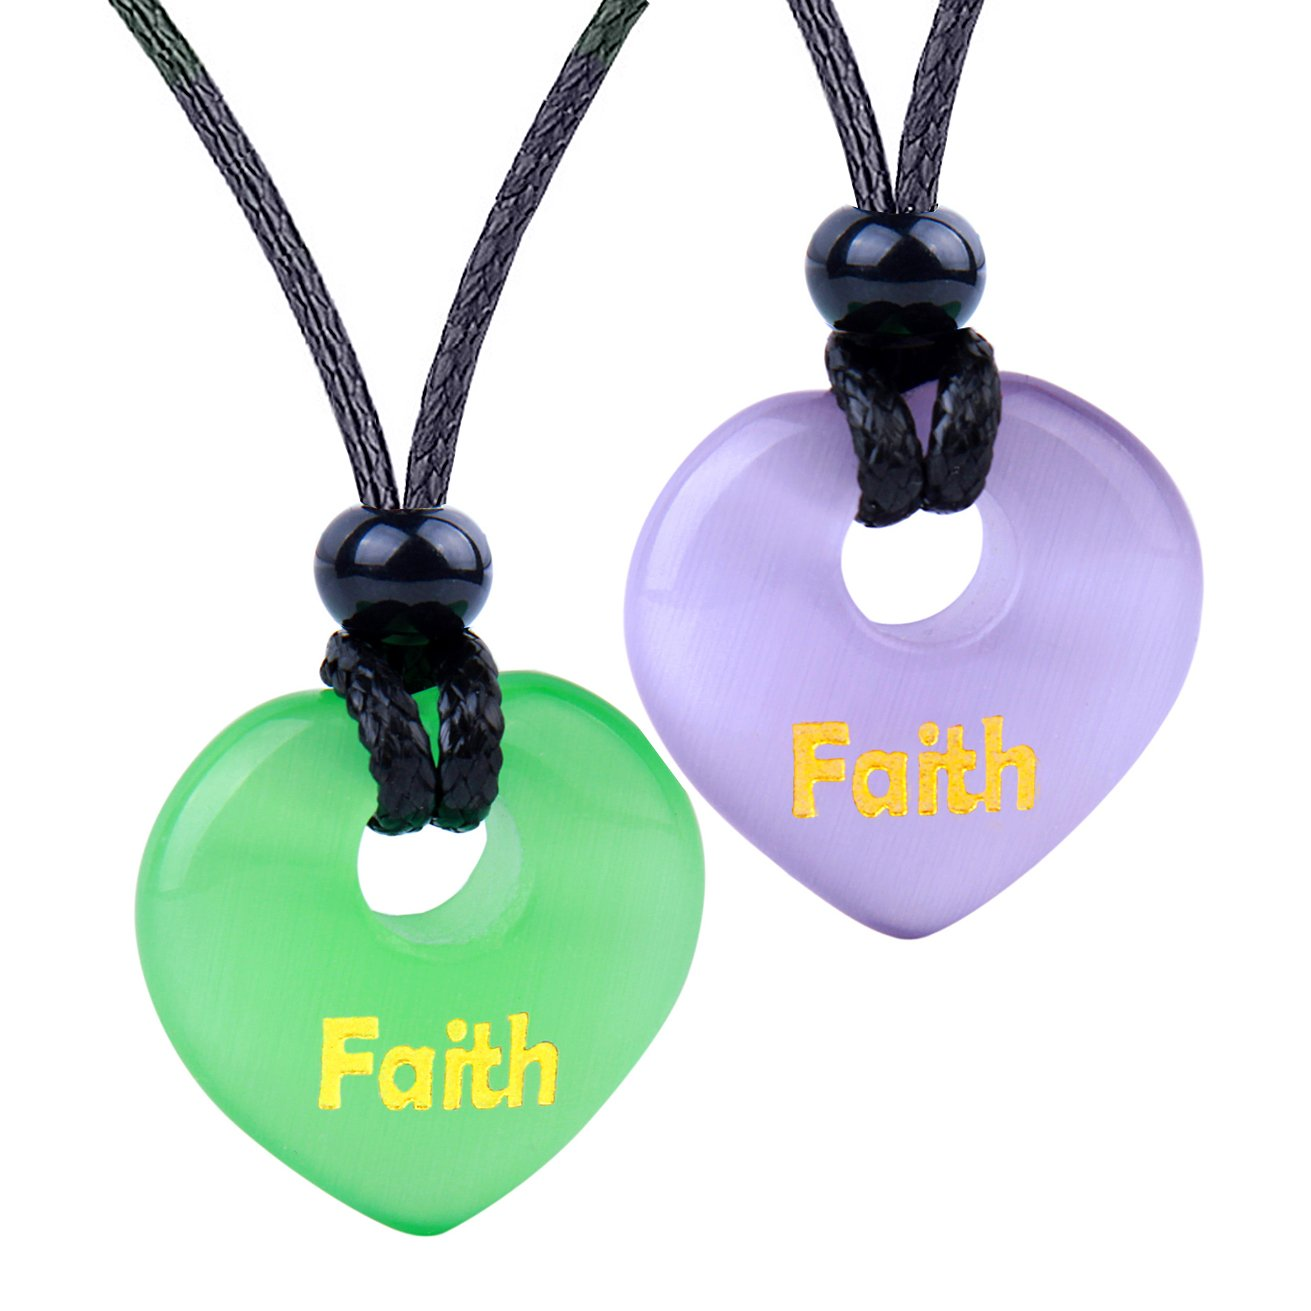 Inspirational Heart Donut Amulets Faith Love Powers Couples BFF Green Purple Simulated Cats Eye Necklaces